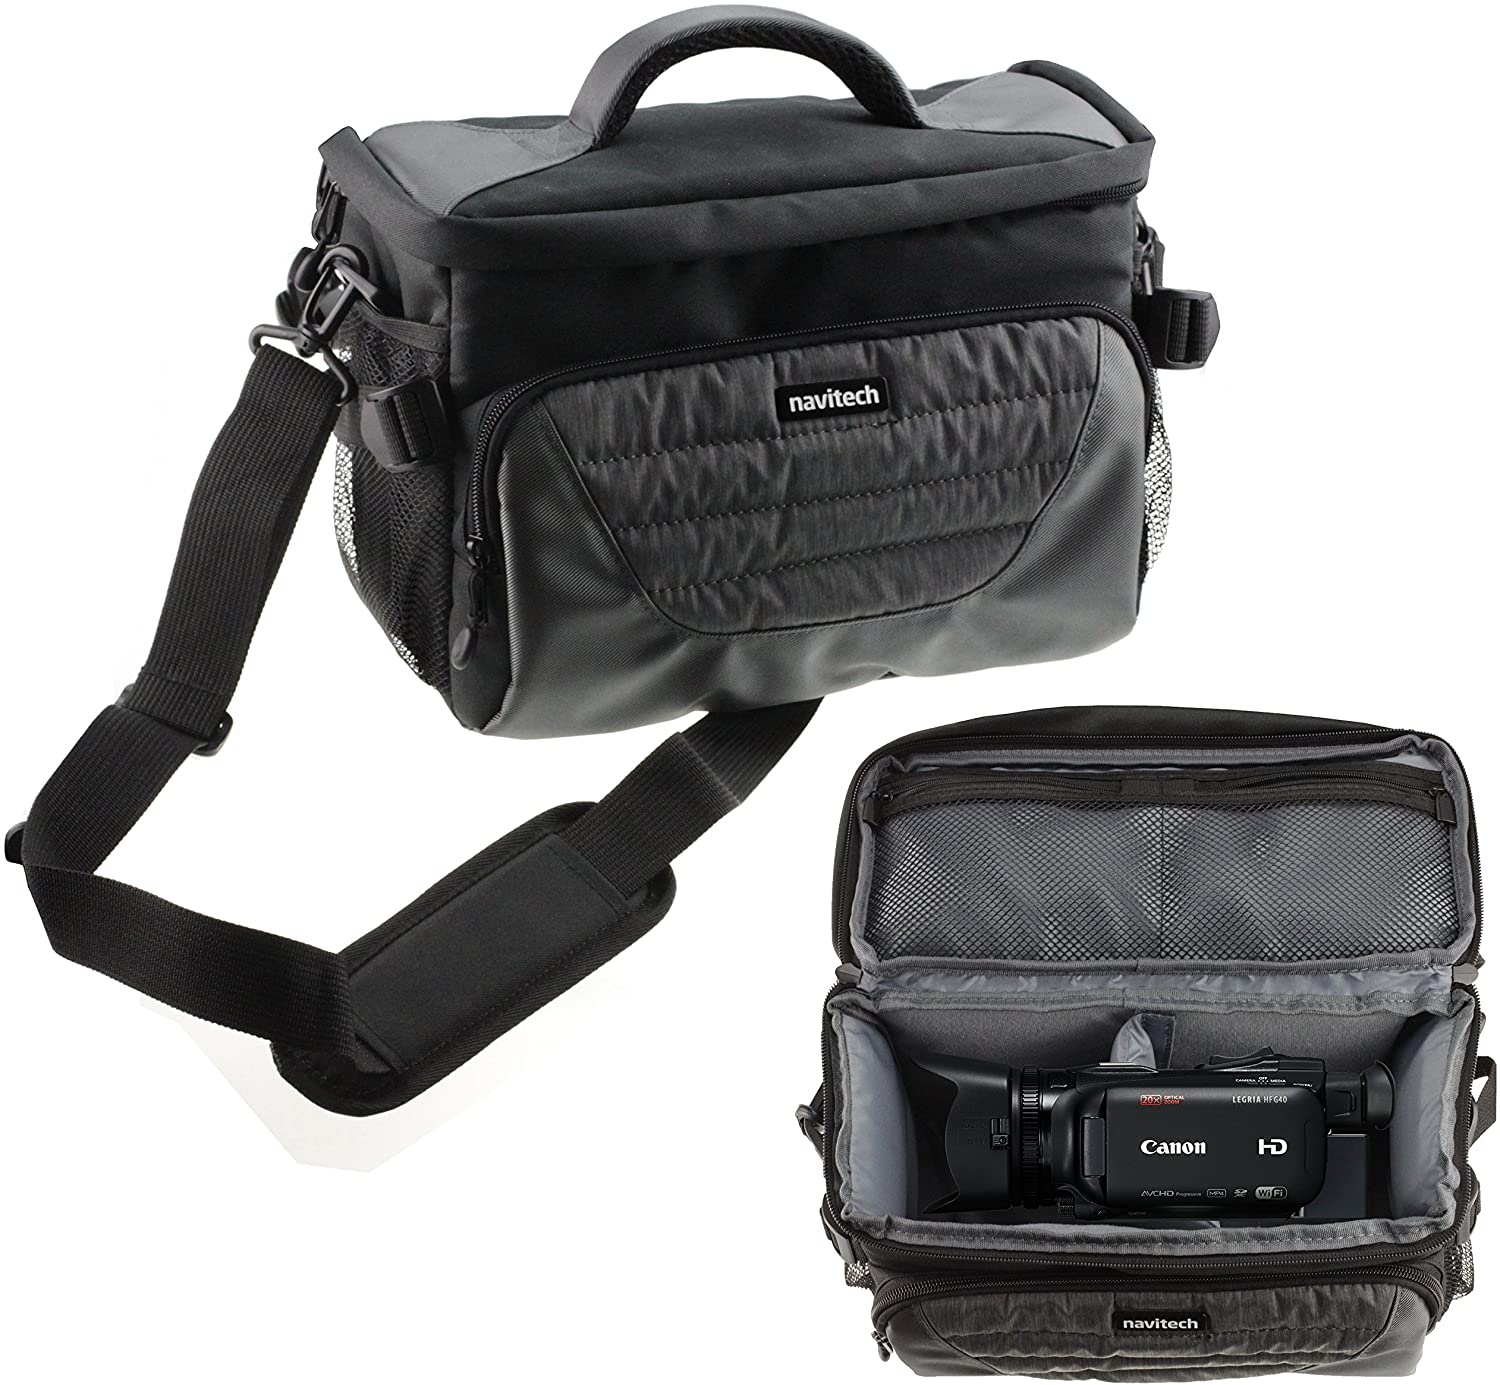 Navitech Grey Camcorder Case Bag Cover Compatible with The JVC GZ-RY980